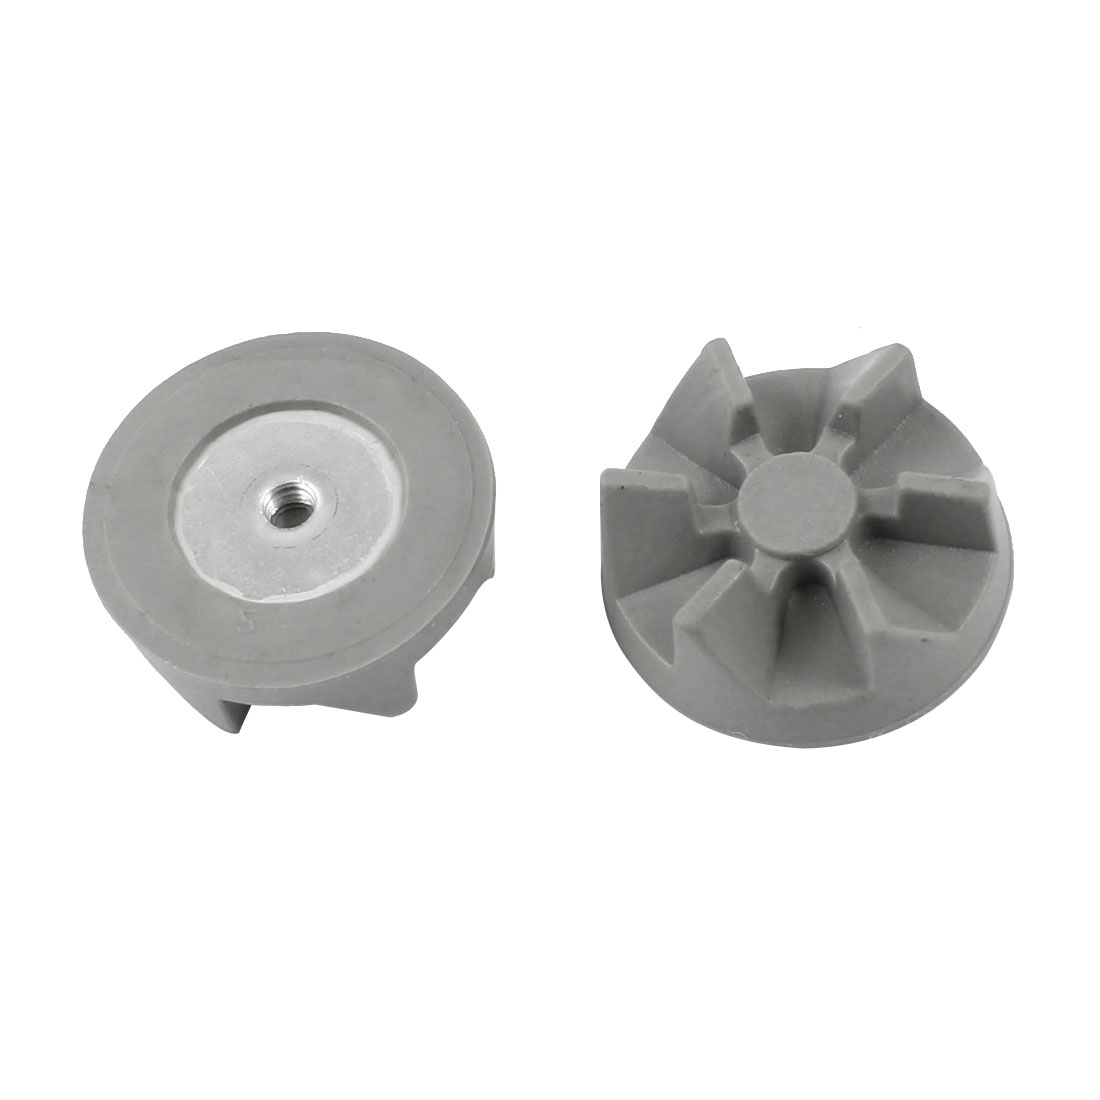 Household 6 Teeth Rubber Coupling Clutch Gear Gray 36mm Dia 2pcs for Blender